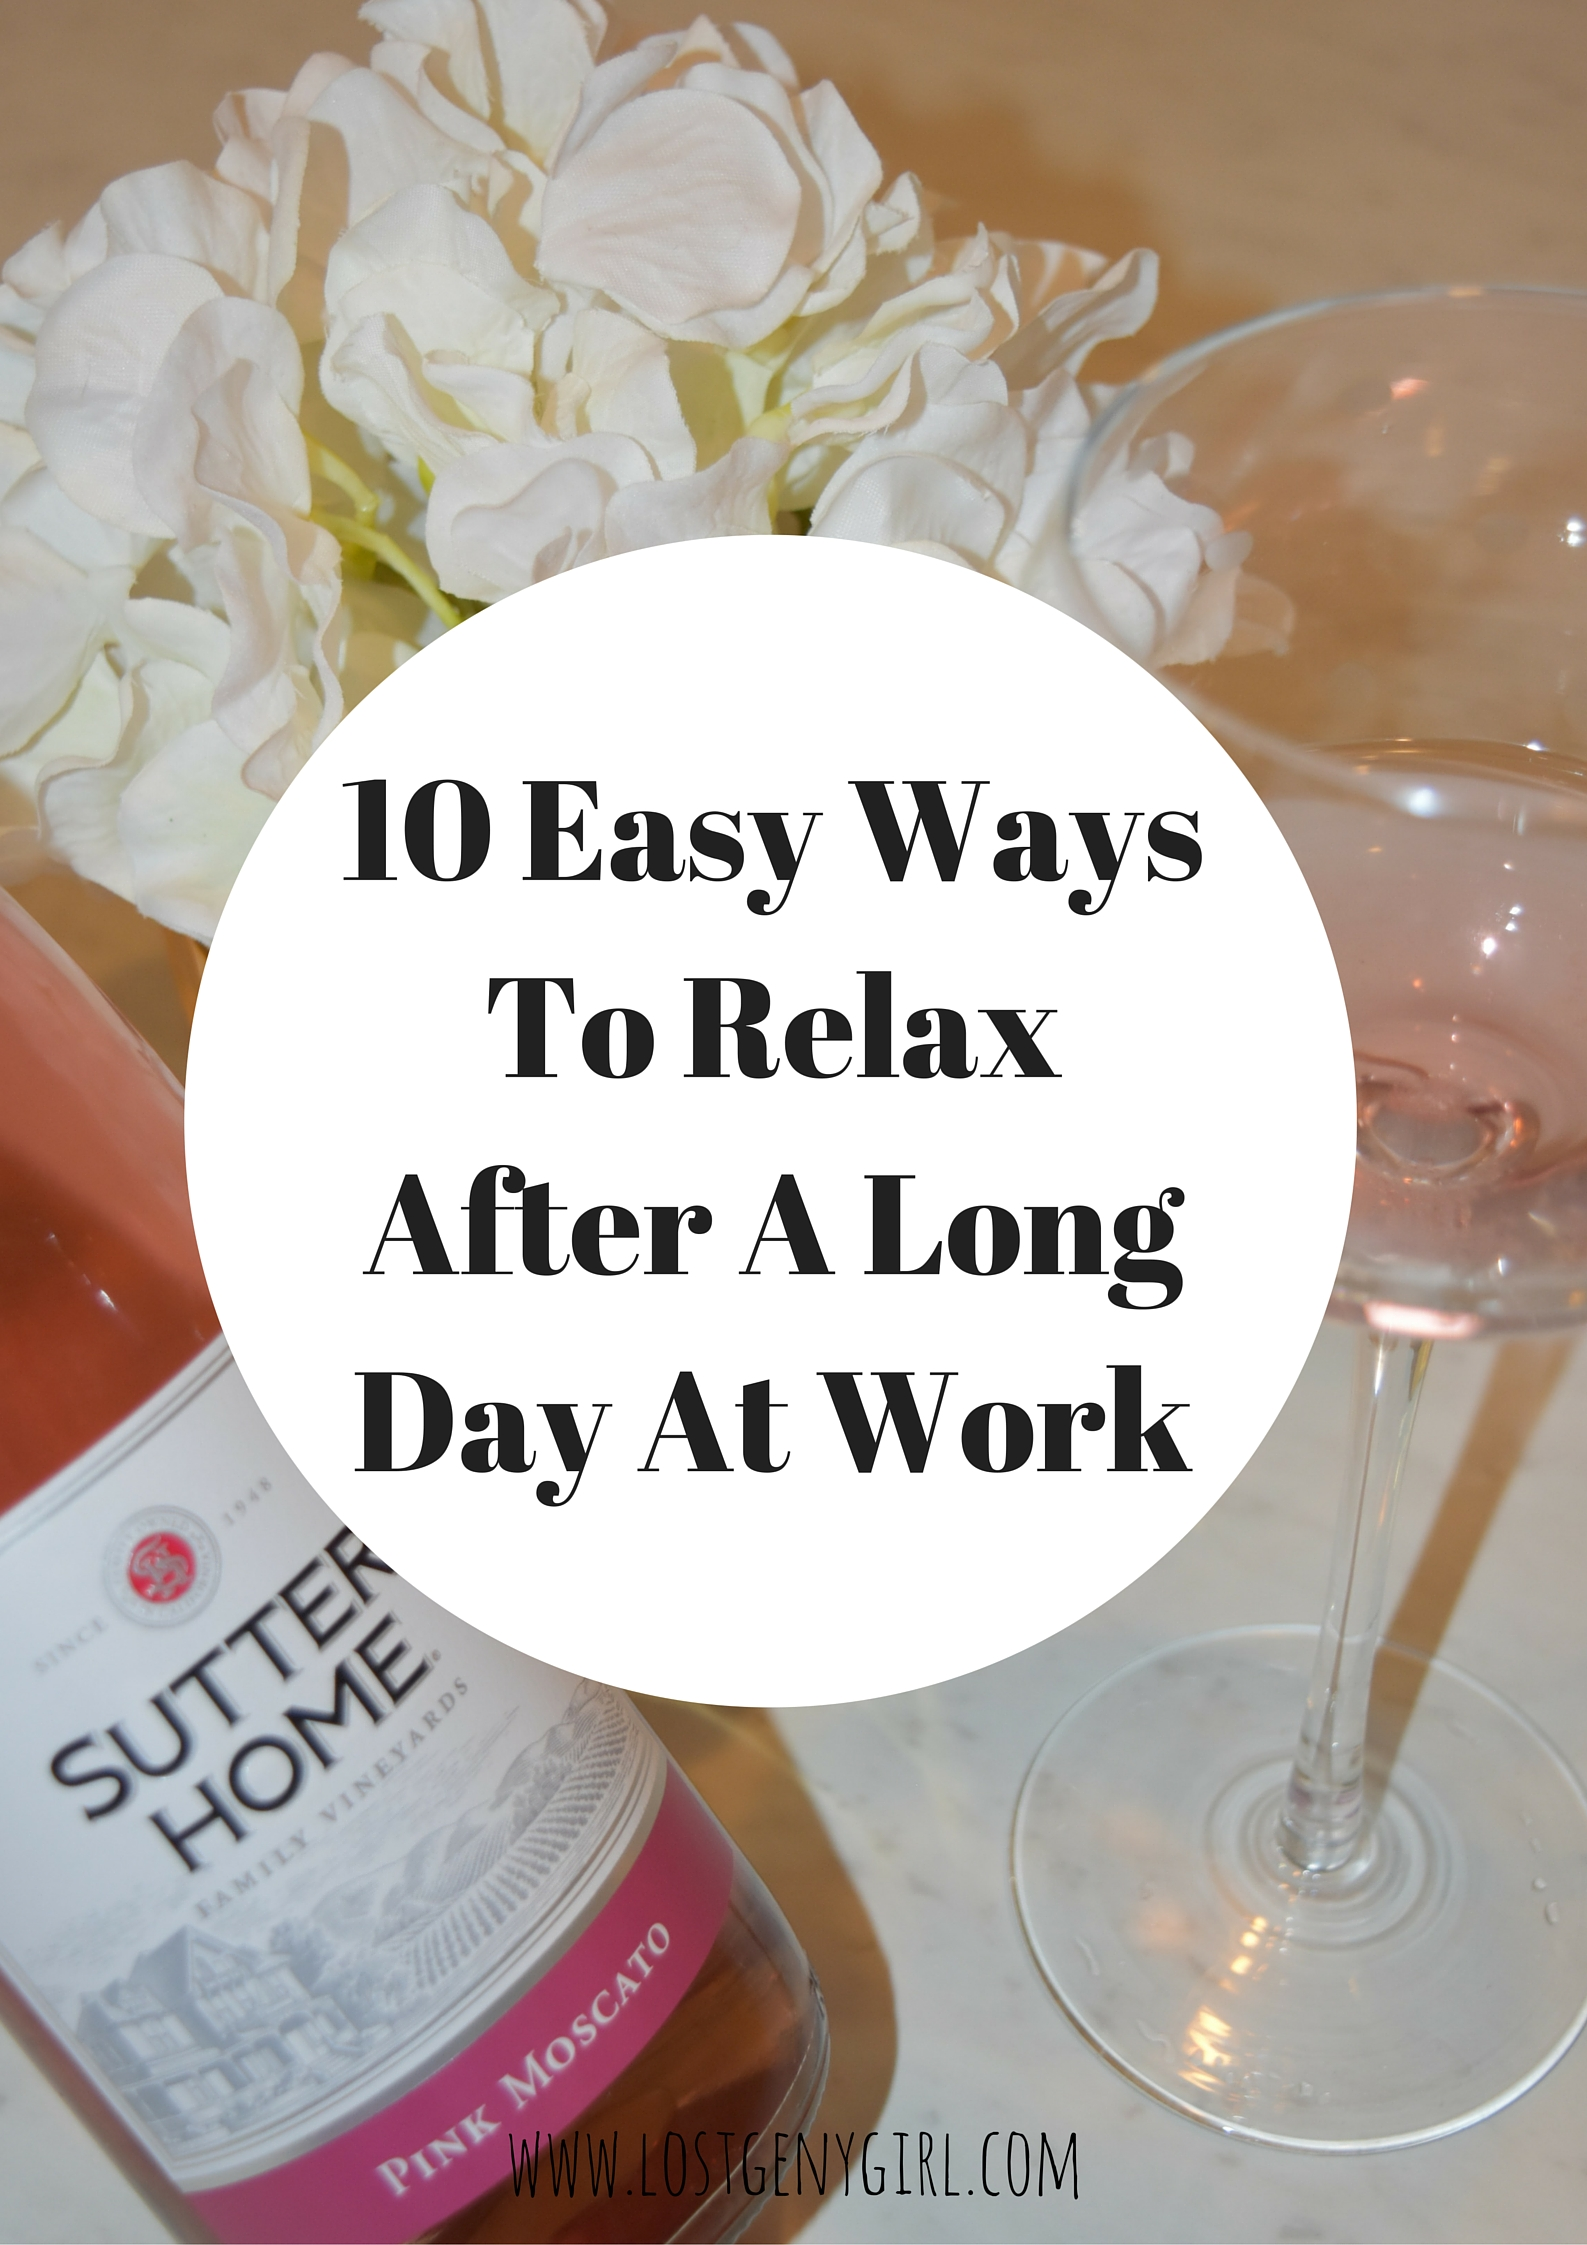 10 Easy Ways To Fix Your Door In Under An Hour: 10 Easy Ways To Relax After A Long Day At Work